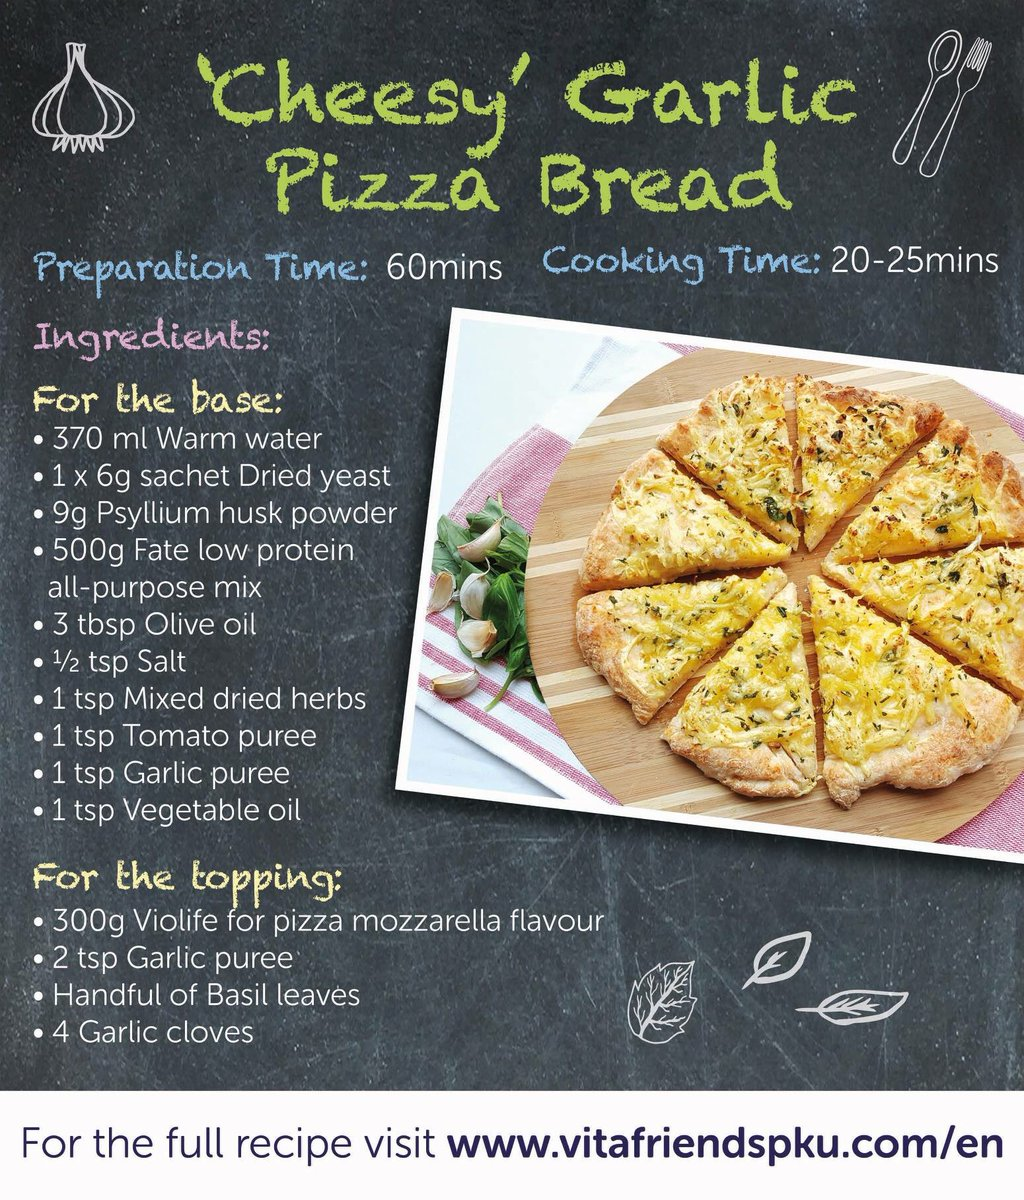 We&#39;re now half way through Fakeaway May and we&#39;ve got a VERY special recipe for you today. This &#39;Cheesy&#39; Garlic Pizza Bread is absolutely delicious (if we do say so ourselves!) Recipe is here:  https://www. vitafriendspku.com/en/recipes/  &nbsp;   #pku #pkurecipes #FakeawayMay<br>http://pic.twitter.com/vP03YNDNAv